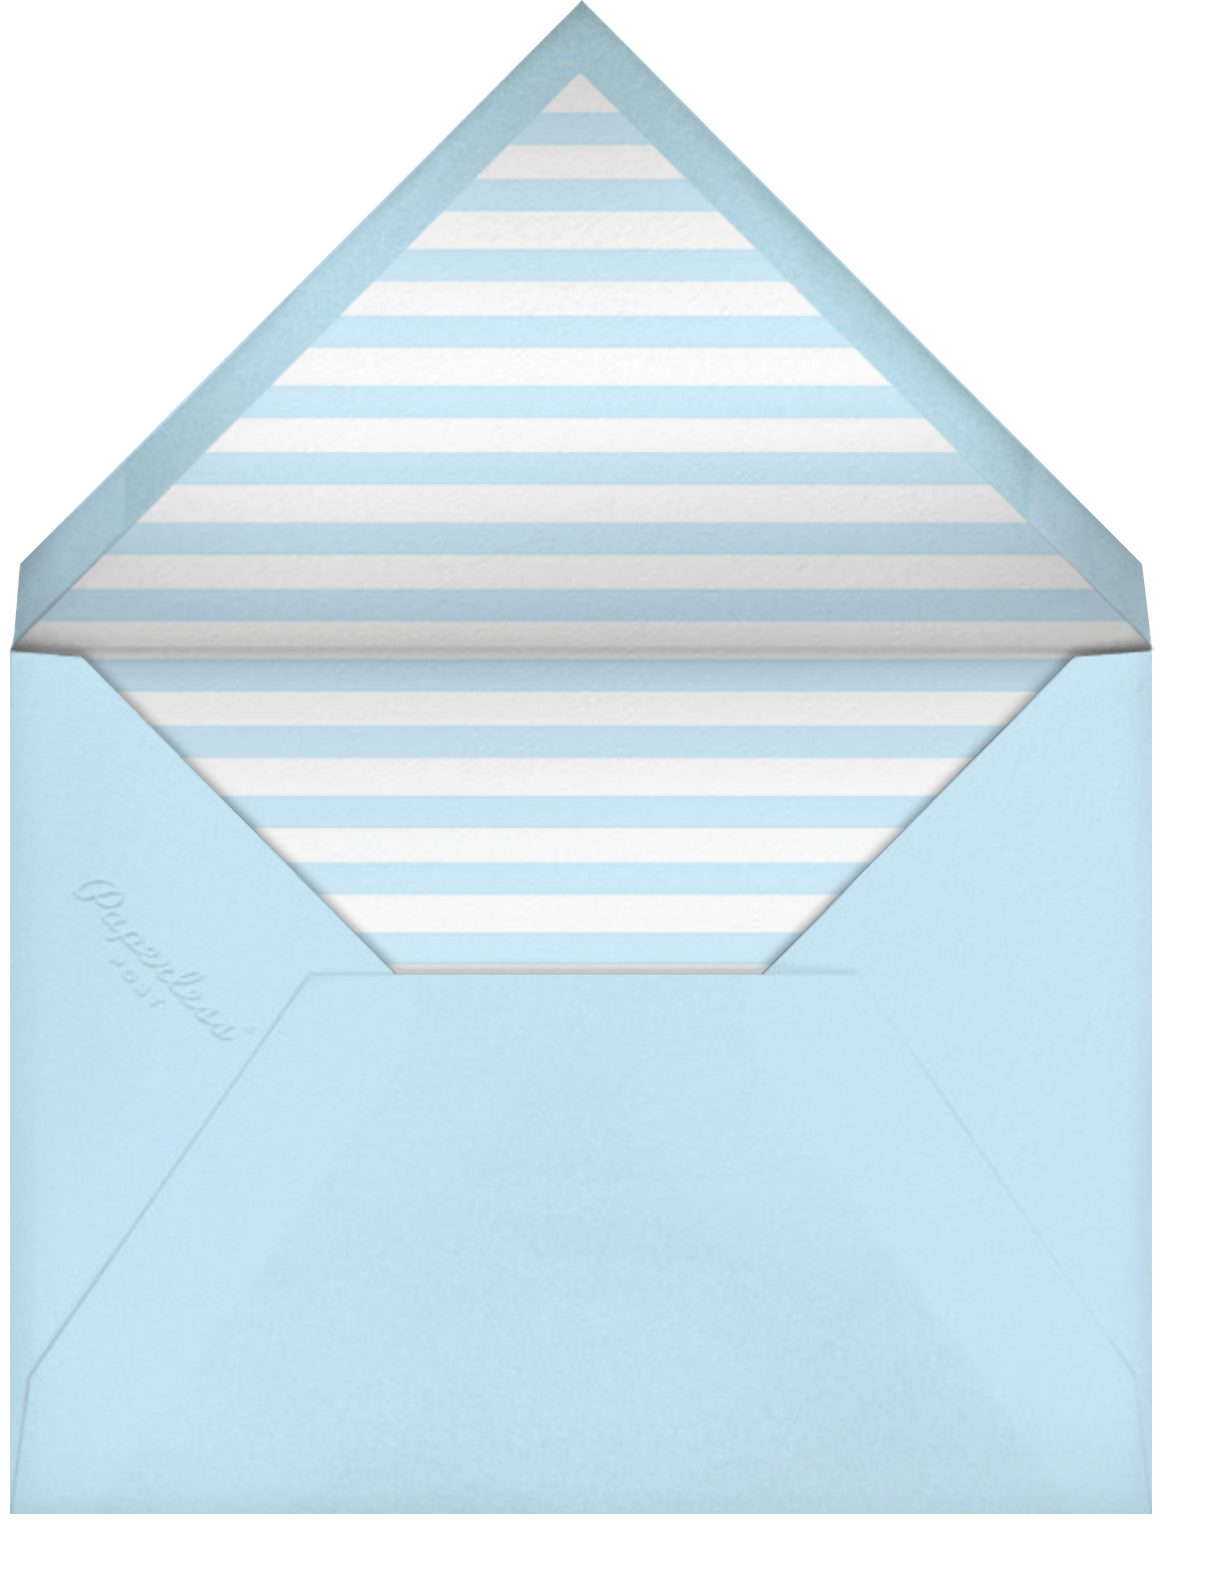 Mr. Digby (Stationery)  - Mr. Boddington's Studio - Wedding stationery - envelope back